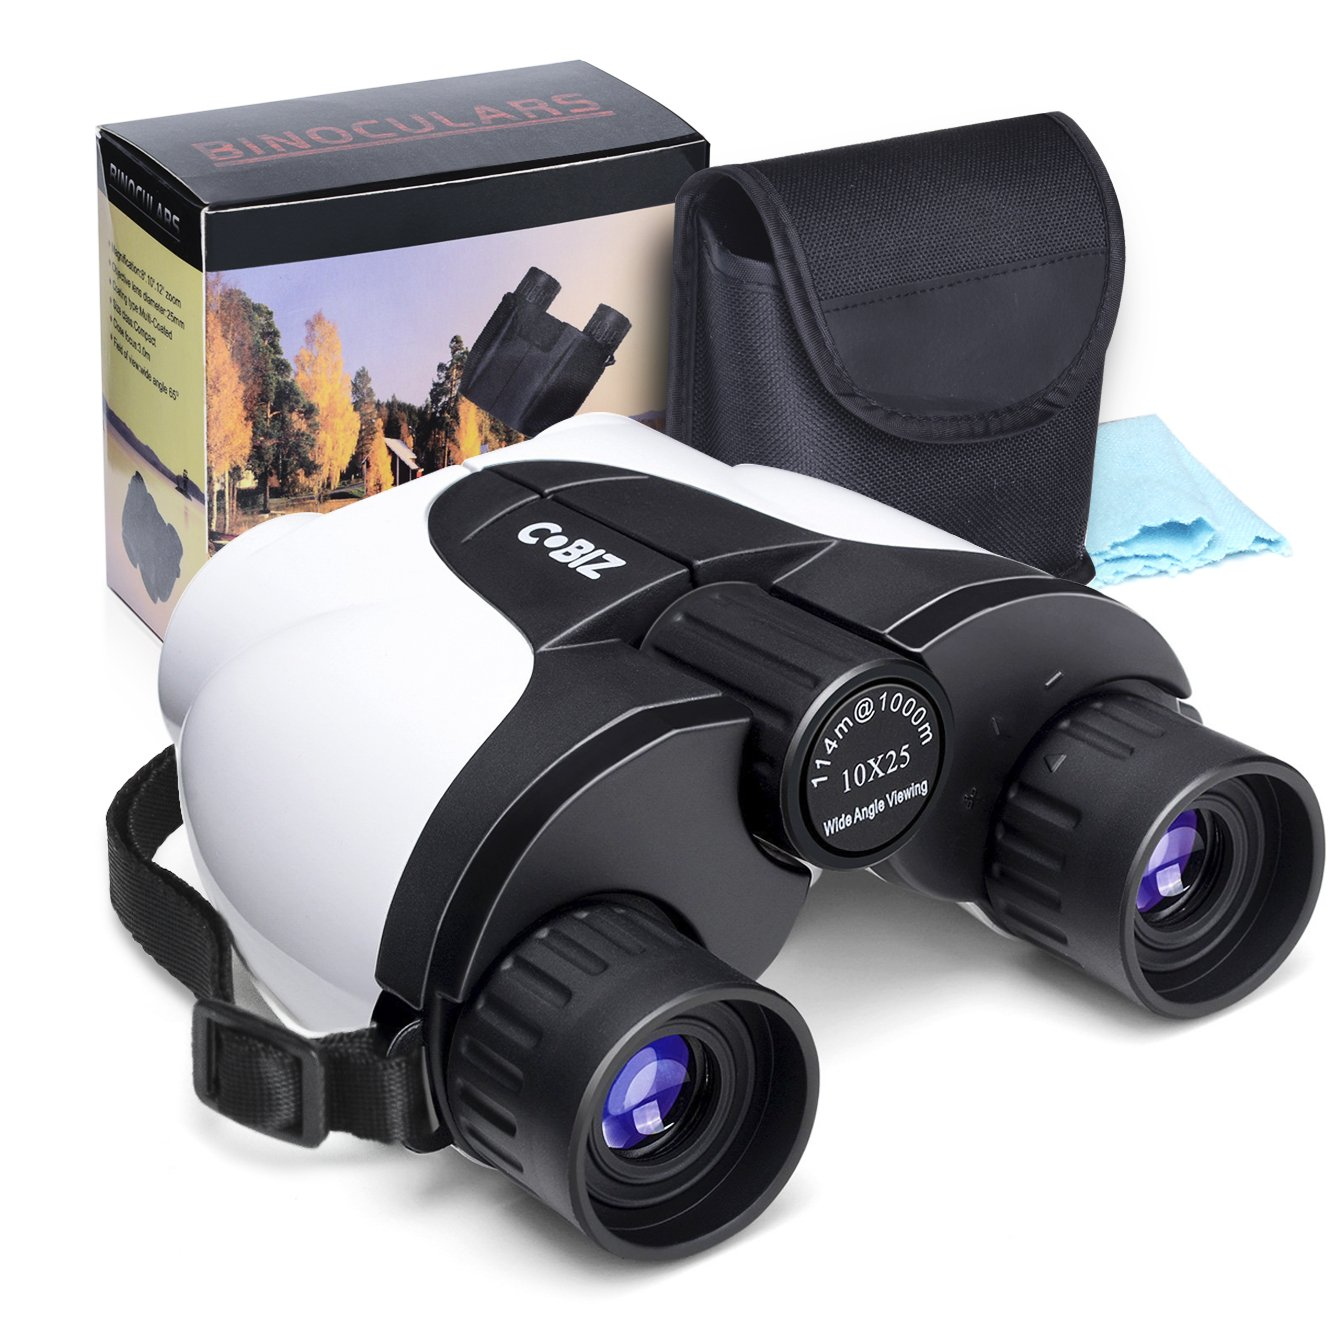 5. Kids Binoculars,Cobiz 10x25 Outdoor Binoculars for Kids